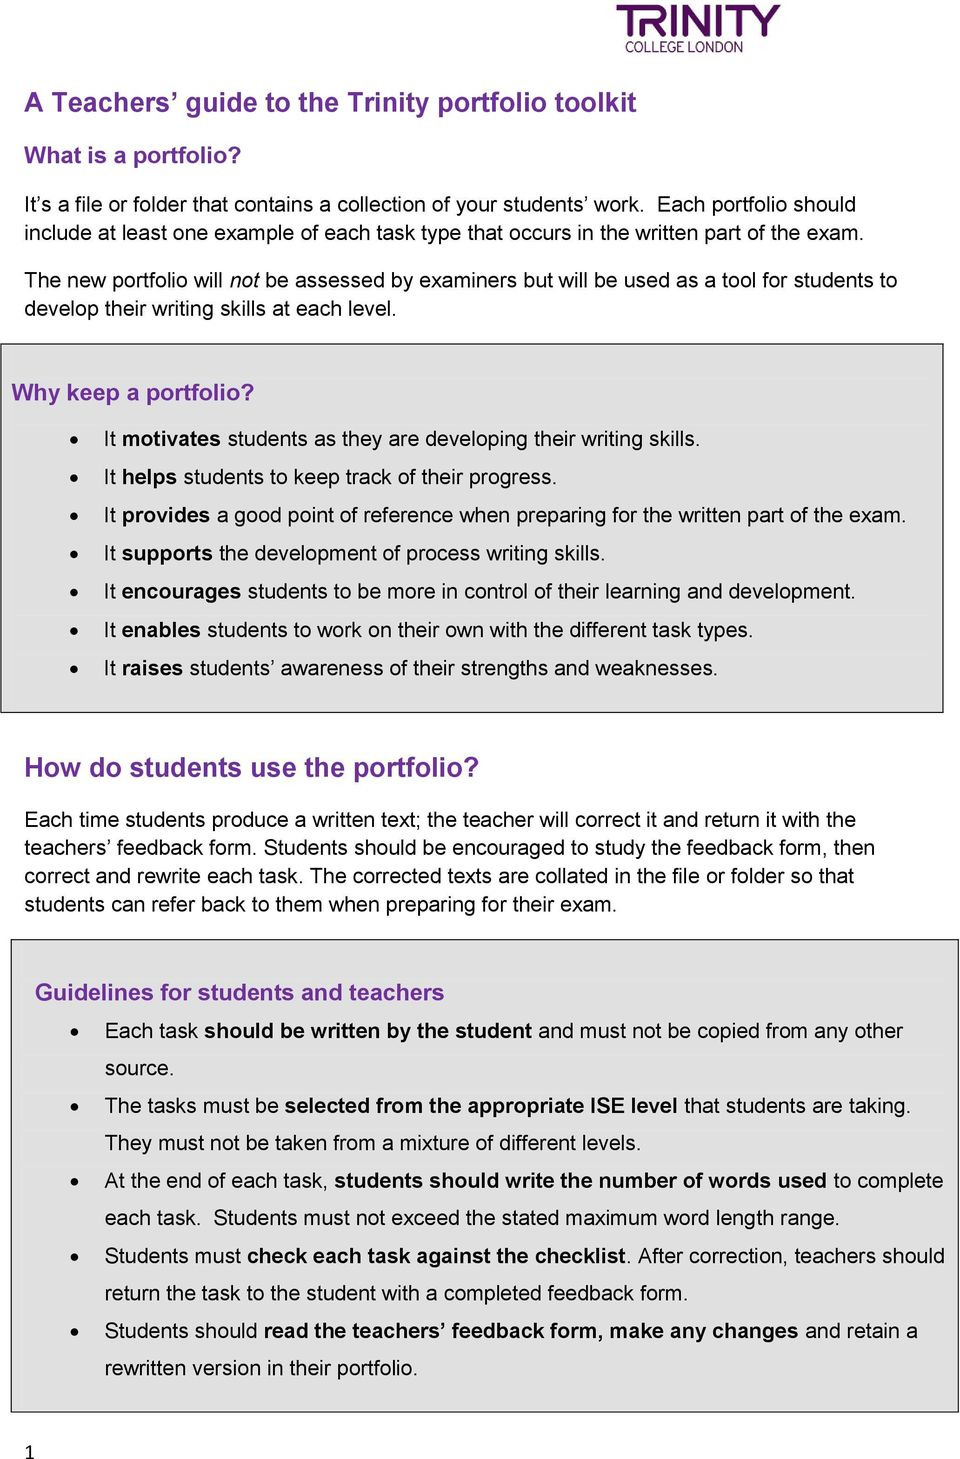 The new portfolio will not be assessed by examiners but will be used as a tool for students to develop their writing skills at each level. Why keep a portfolio?